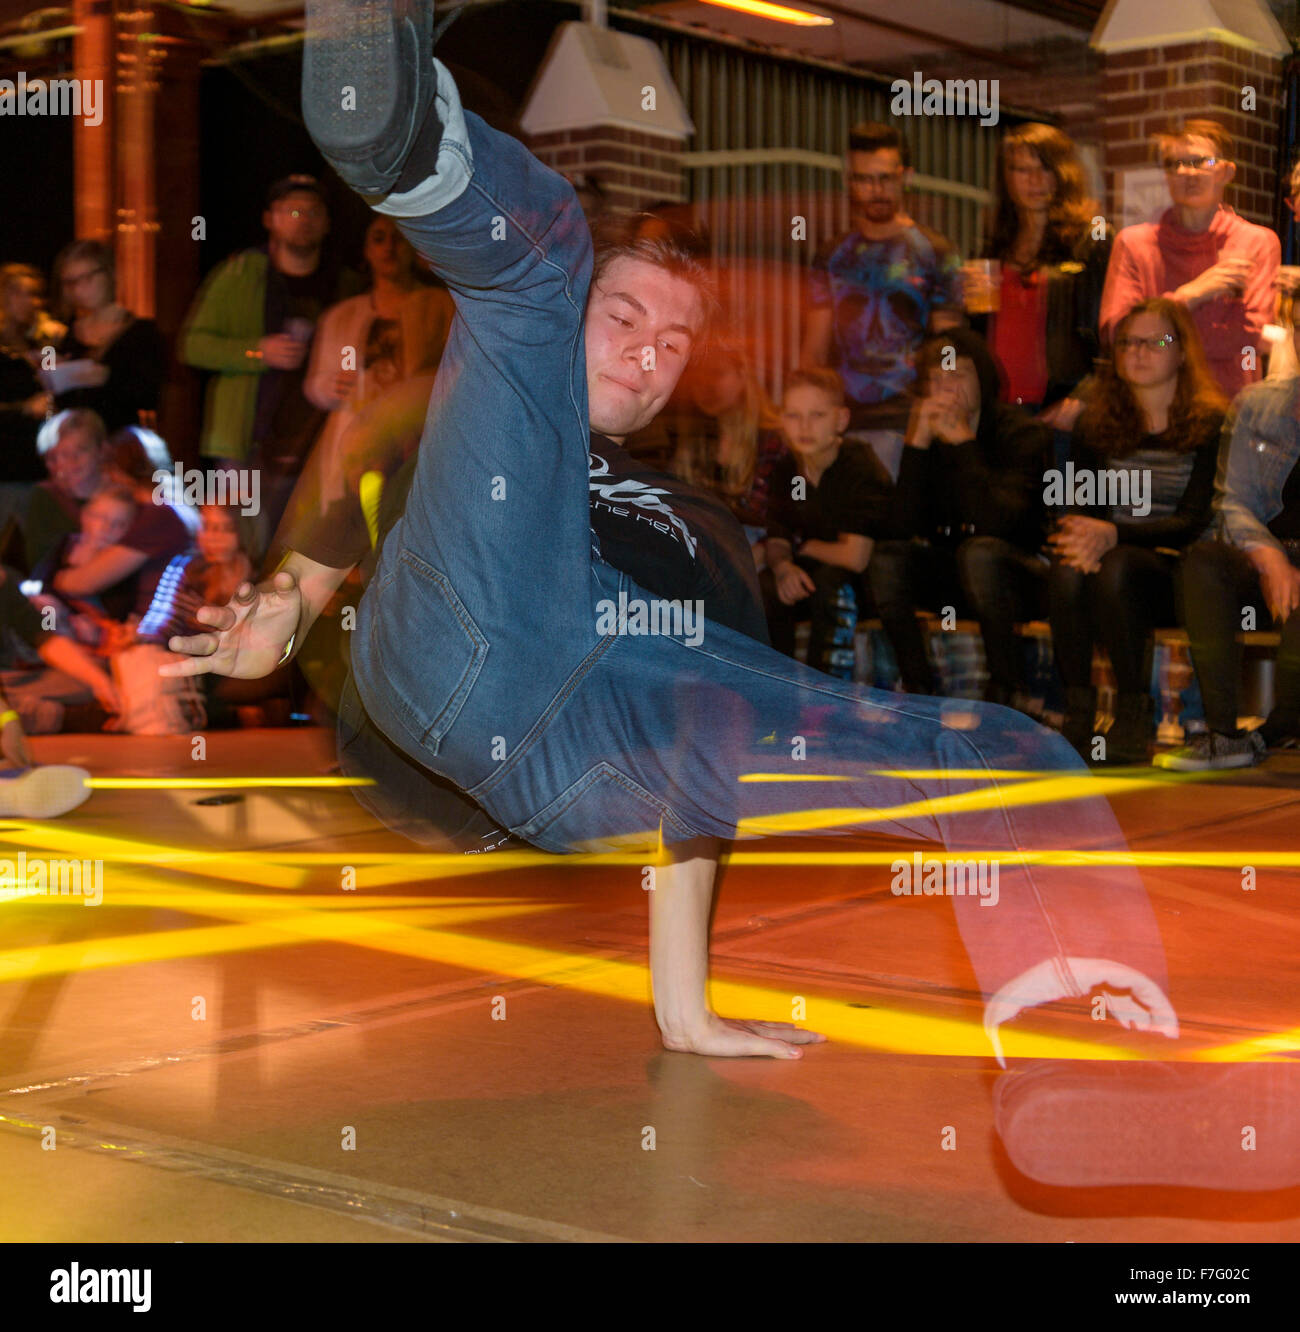 A young break dancer performs on a stage at a break dance competition. Stock Photo